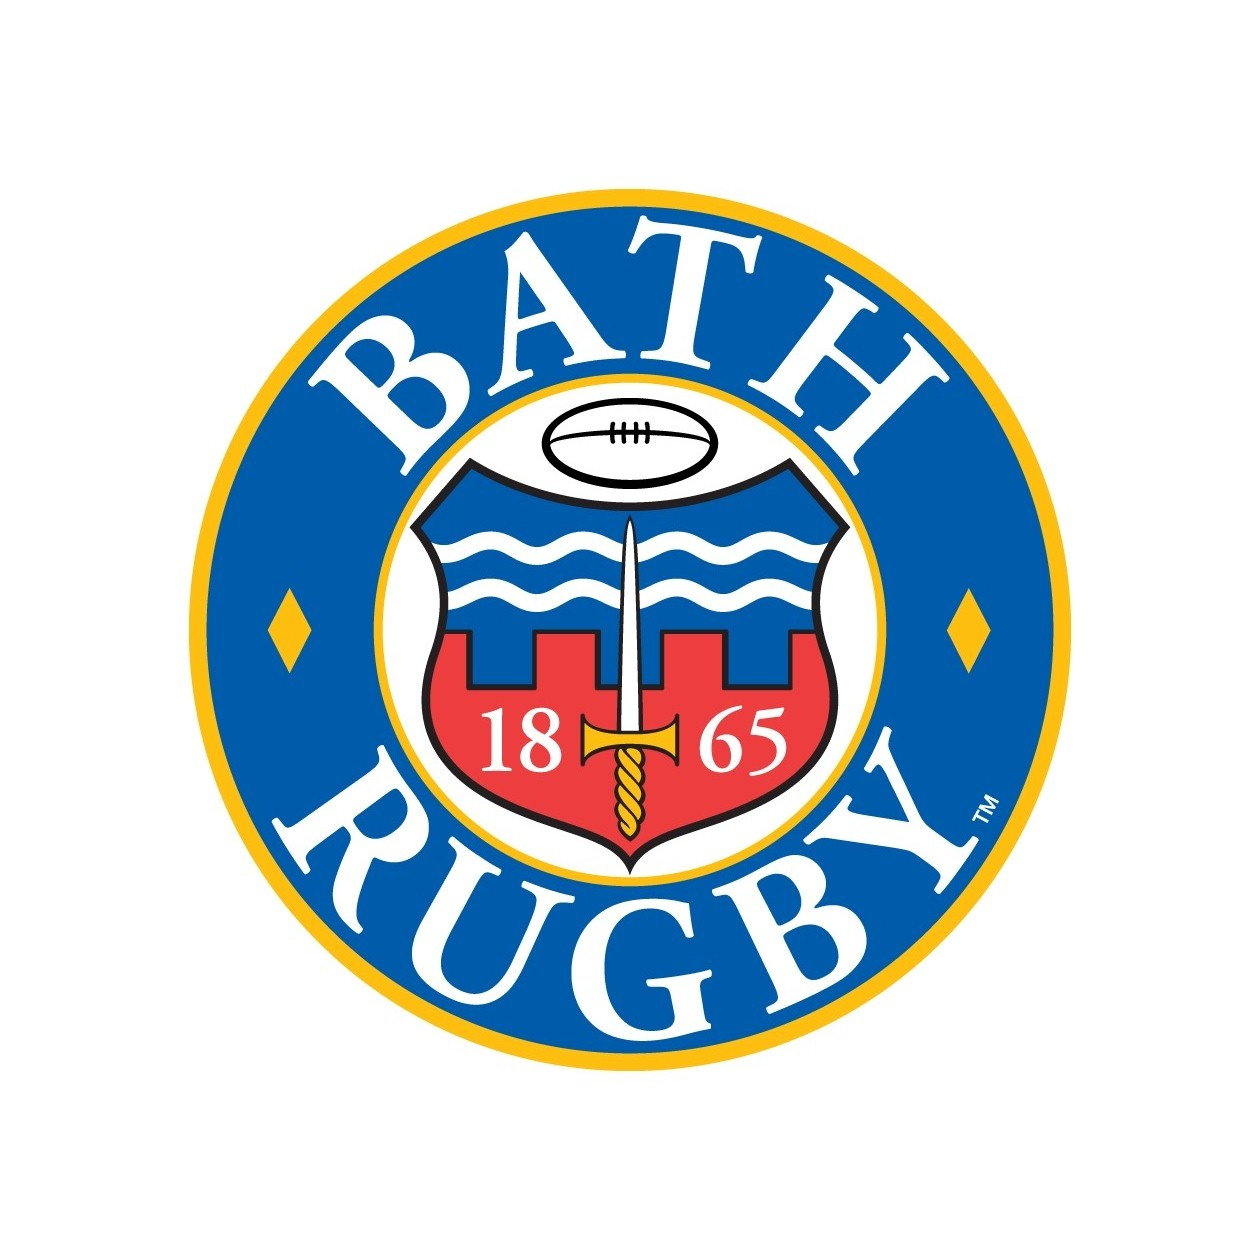 RUGBY: Bath announcement management changes